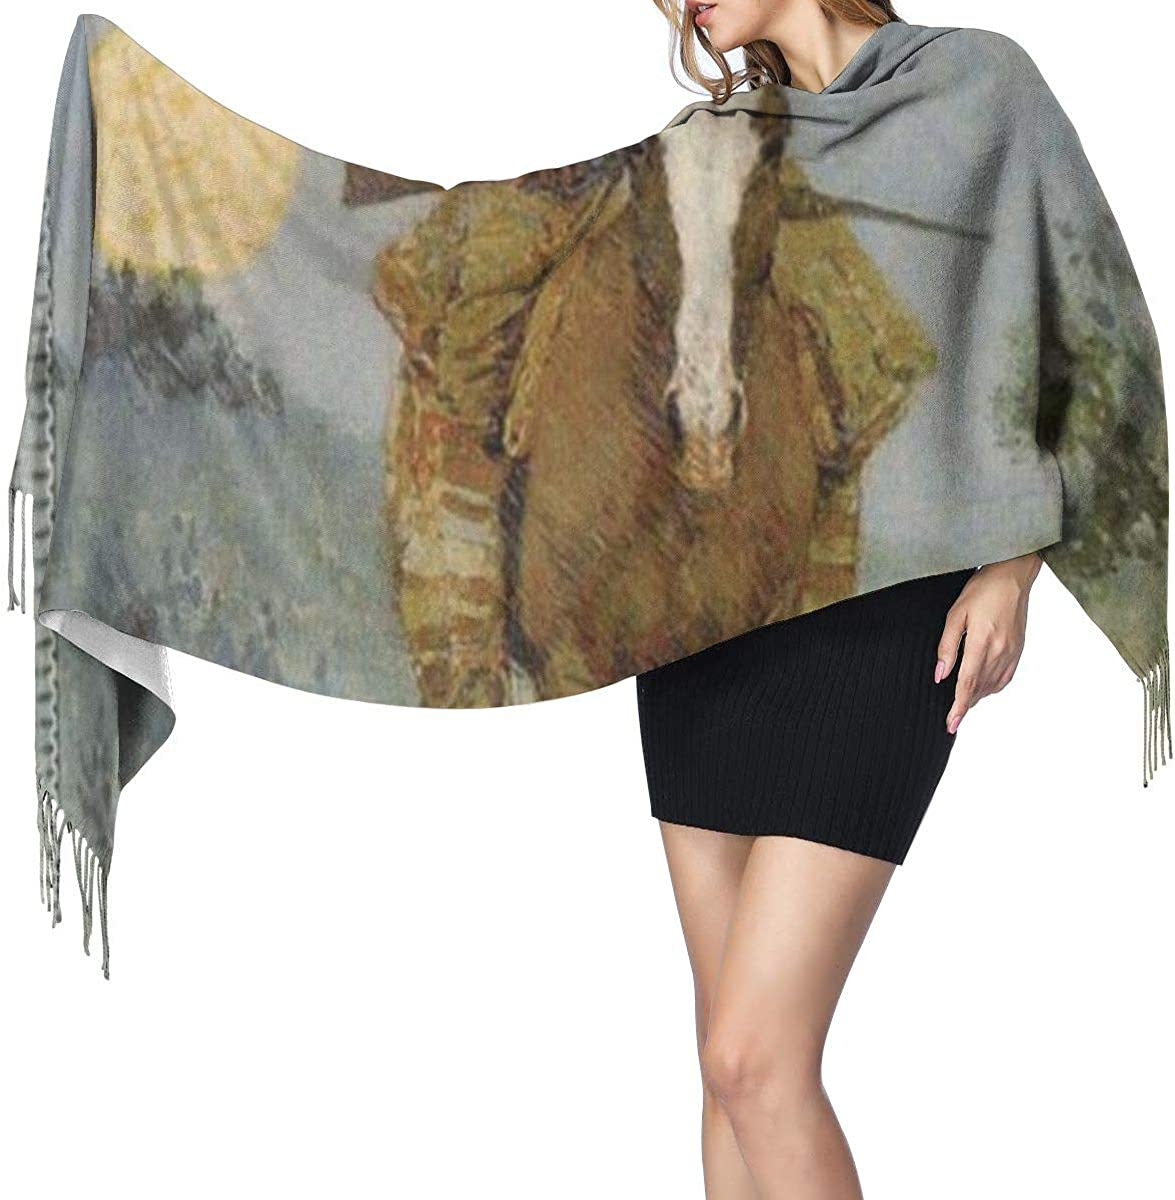 Fashion Lady Shawls,Comfortable Warm Winter Scarfs Art Painting Of The Outlier Soft Cashmere Scarf For Women 1909 By Frederic Remington